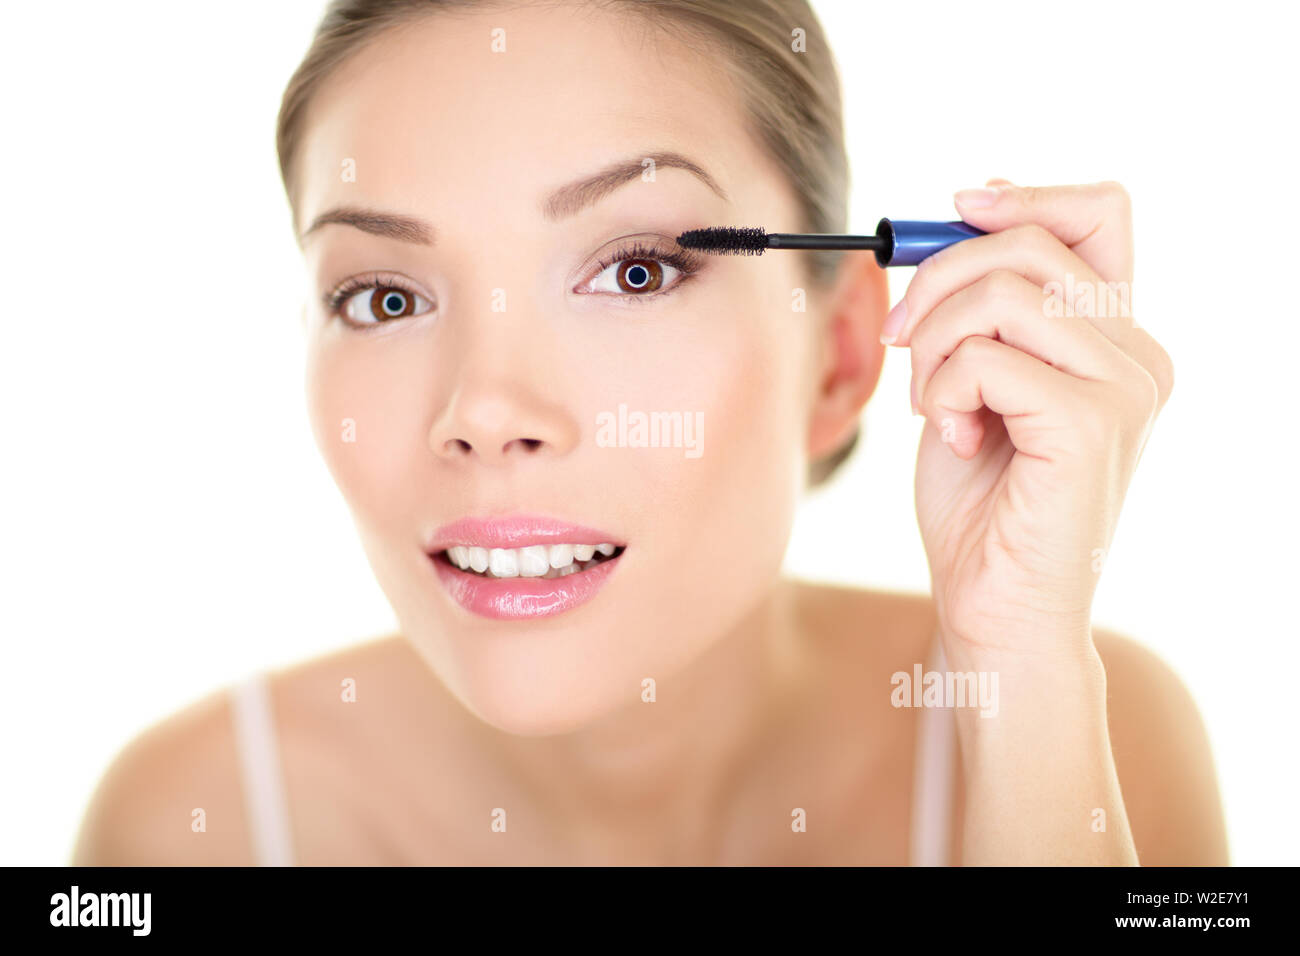 Beauty makeup woman putting mascara eye make up on eyes